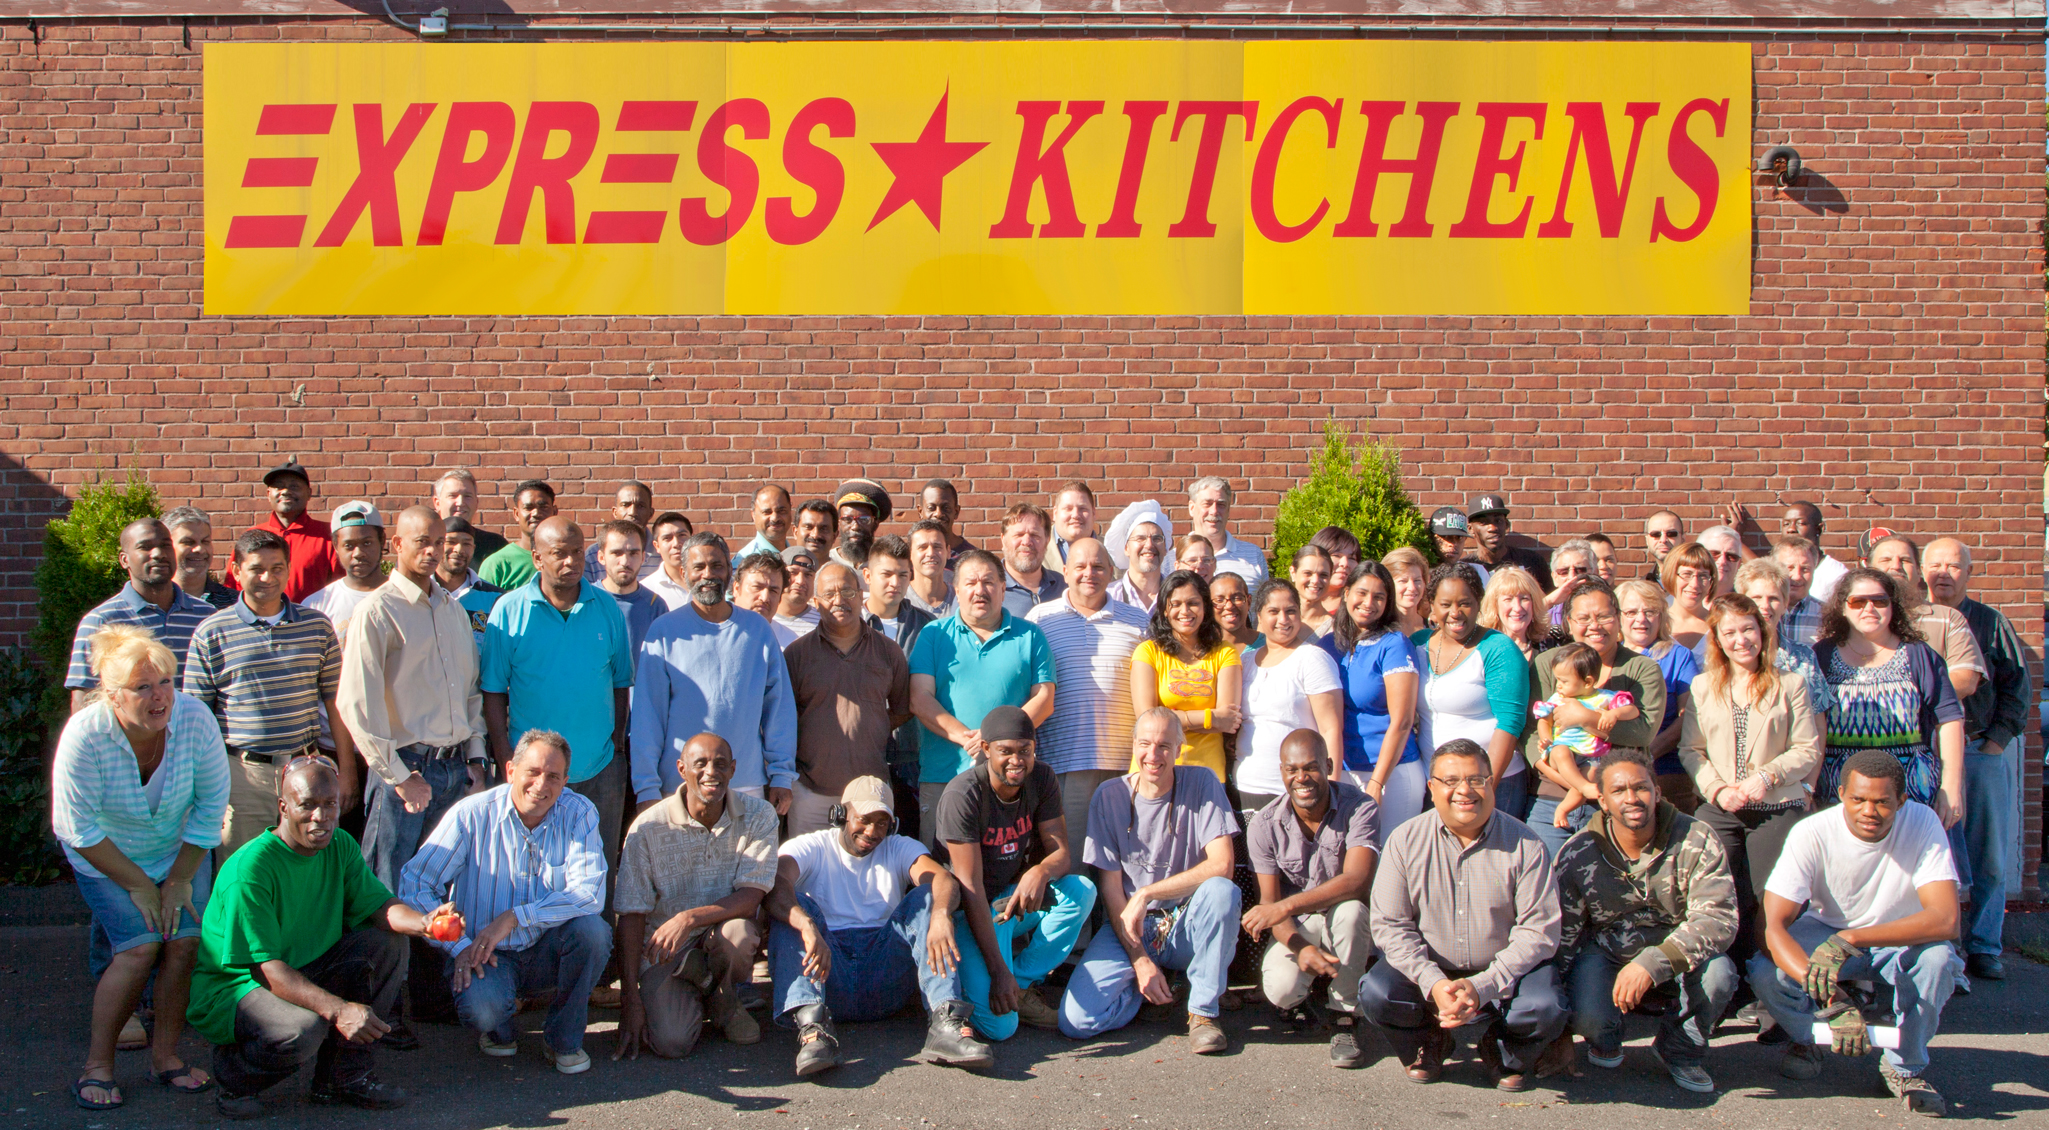 Express Kitchens To Open A New Location In Bridgeport, CT.